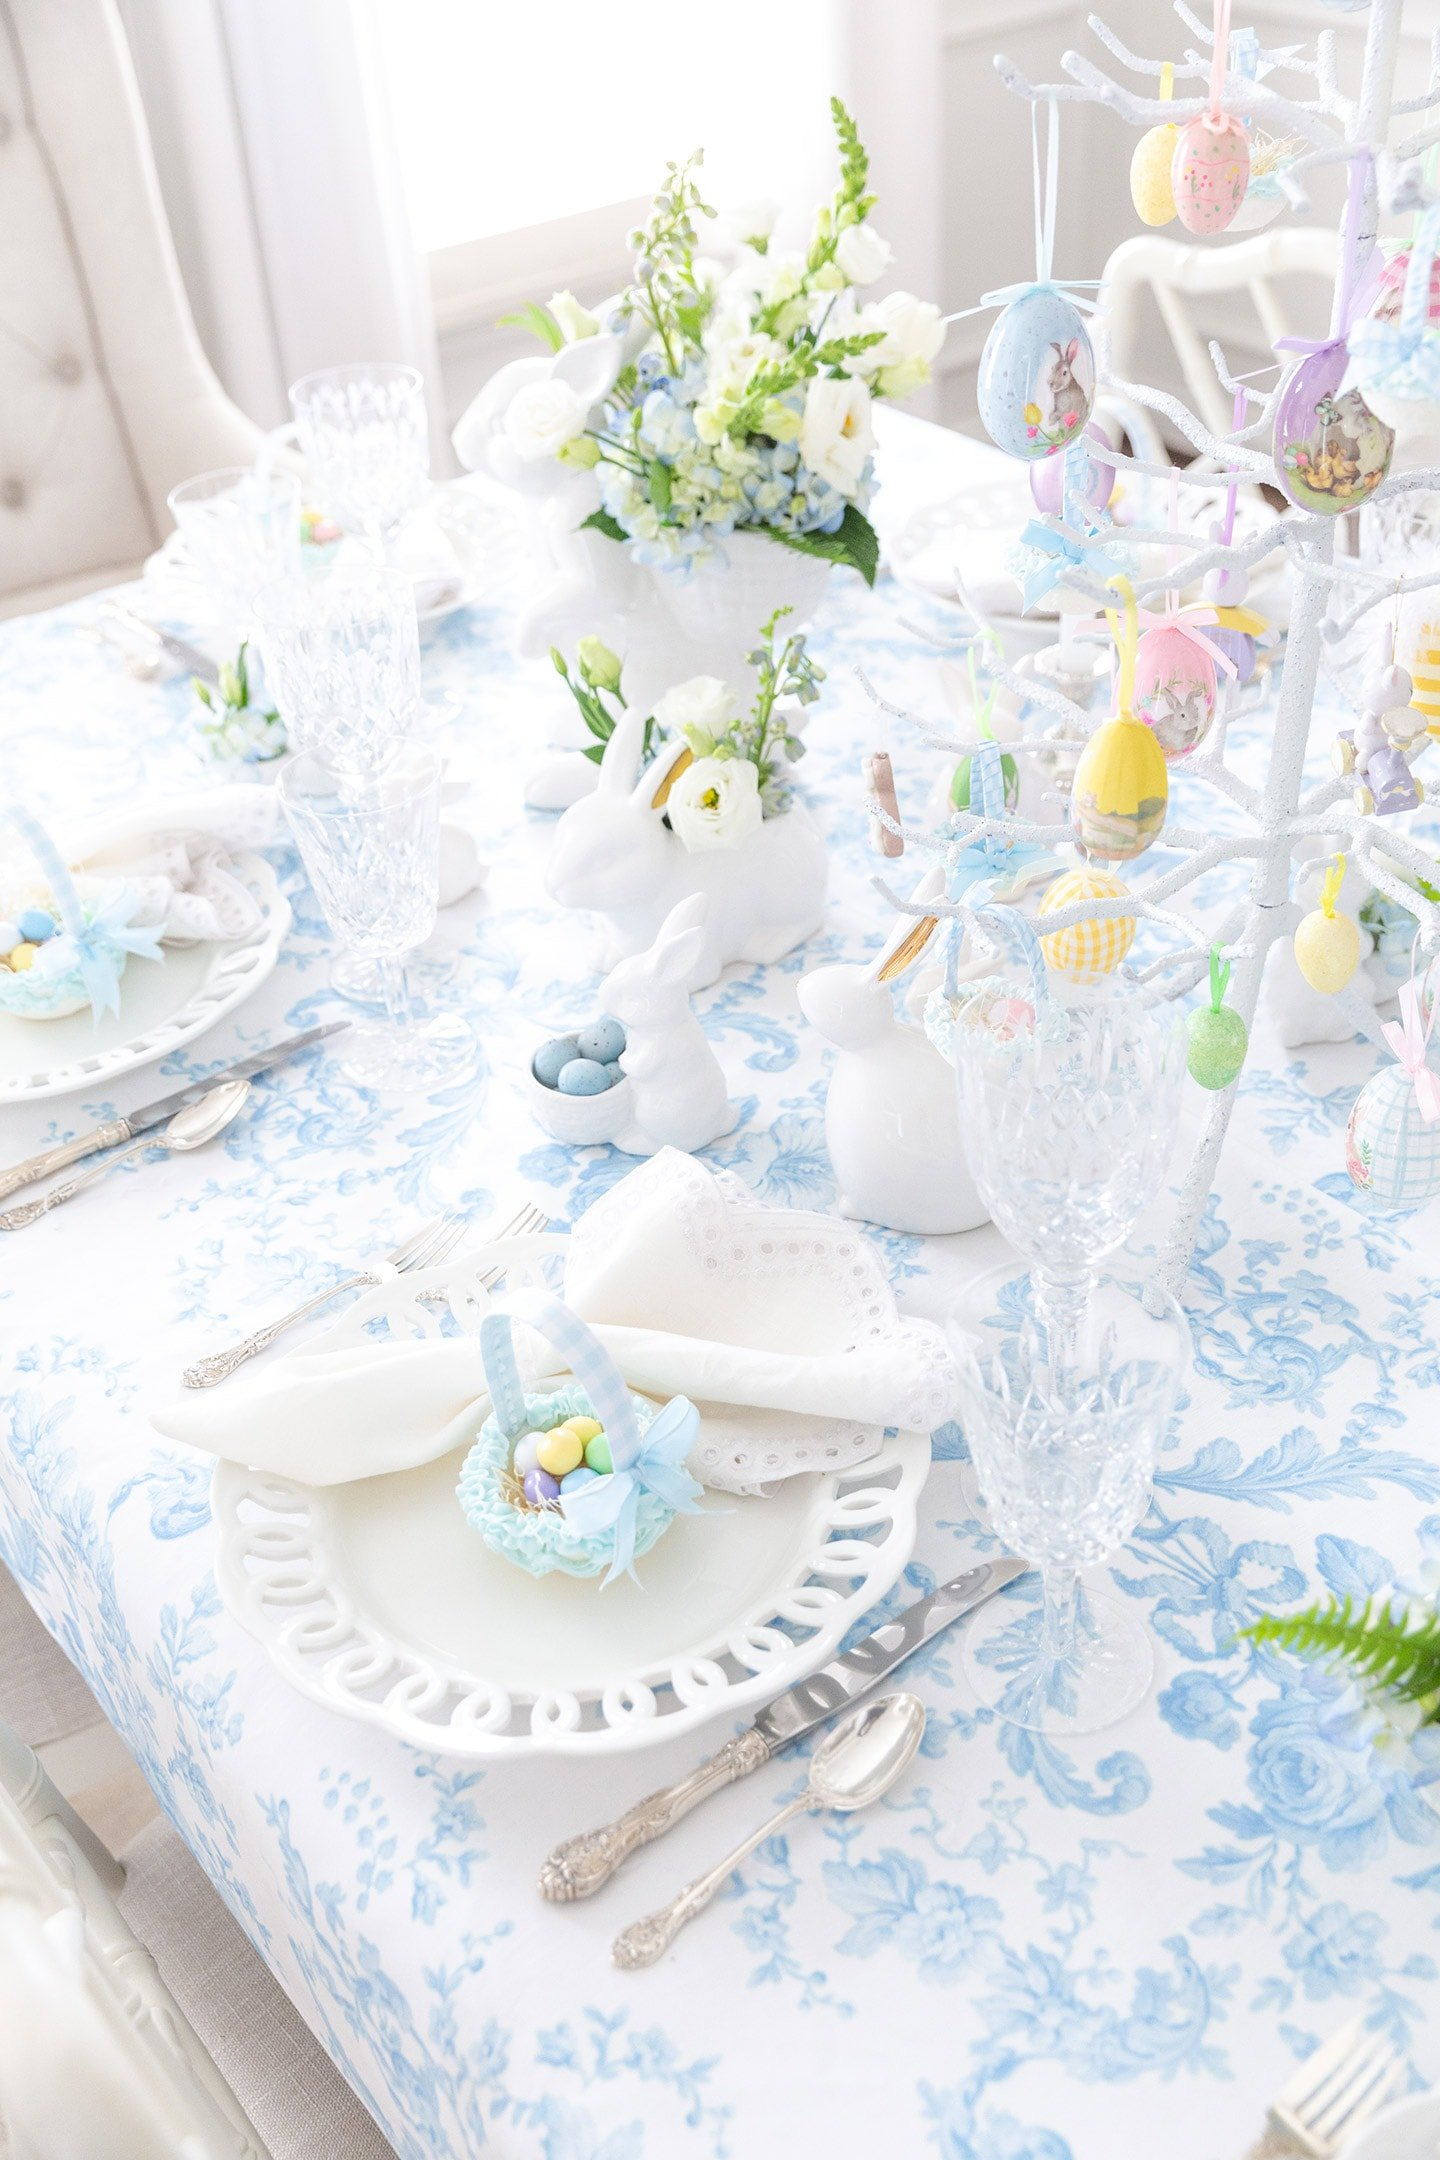 Blue and White Easter Tablescape with Charming Sugar Baskets